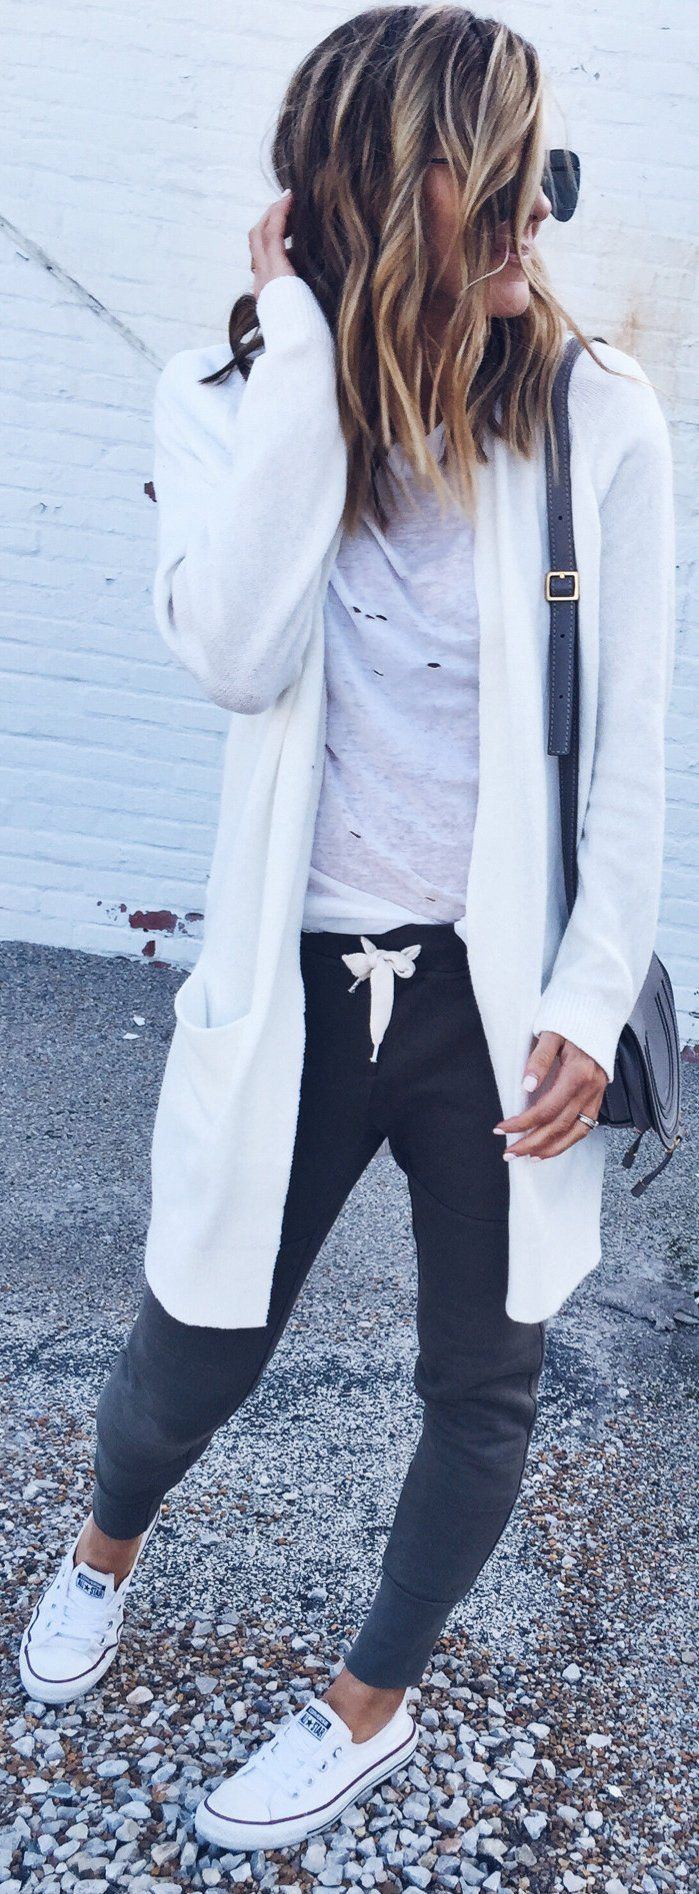 White Cardigan / White Ripped Top / Dark Pants / White Sneakers